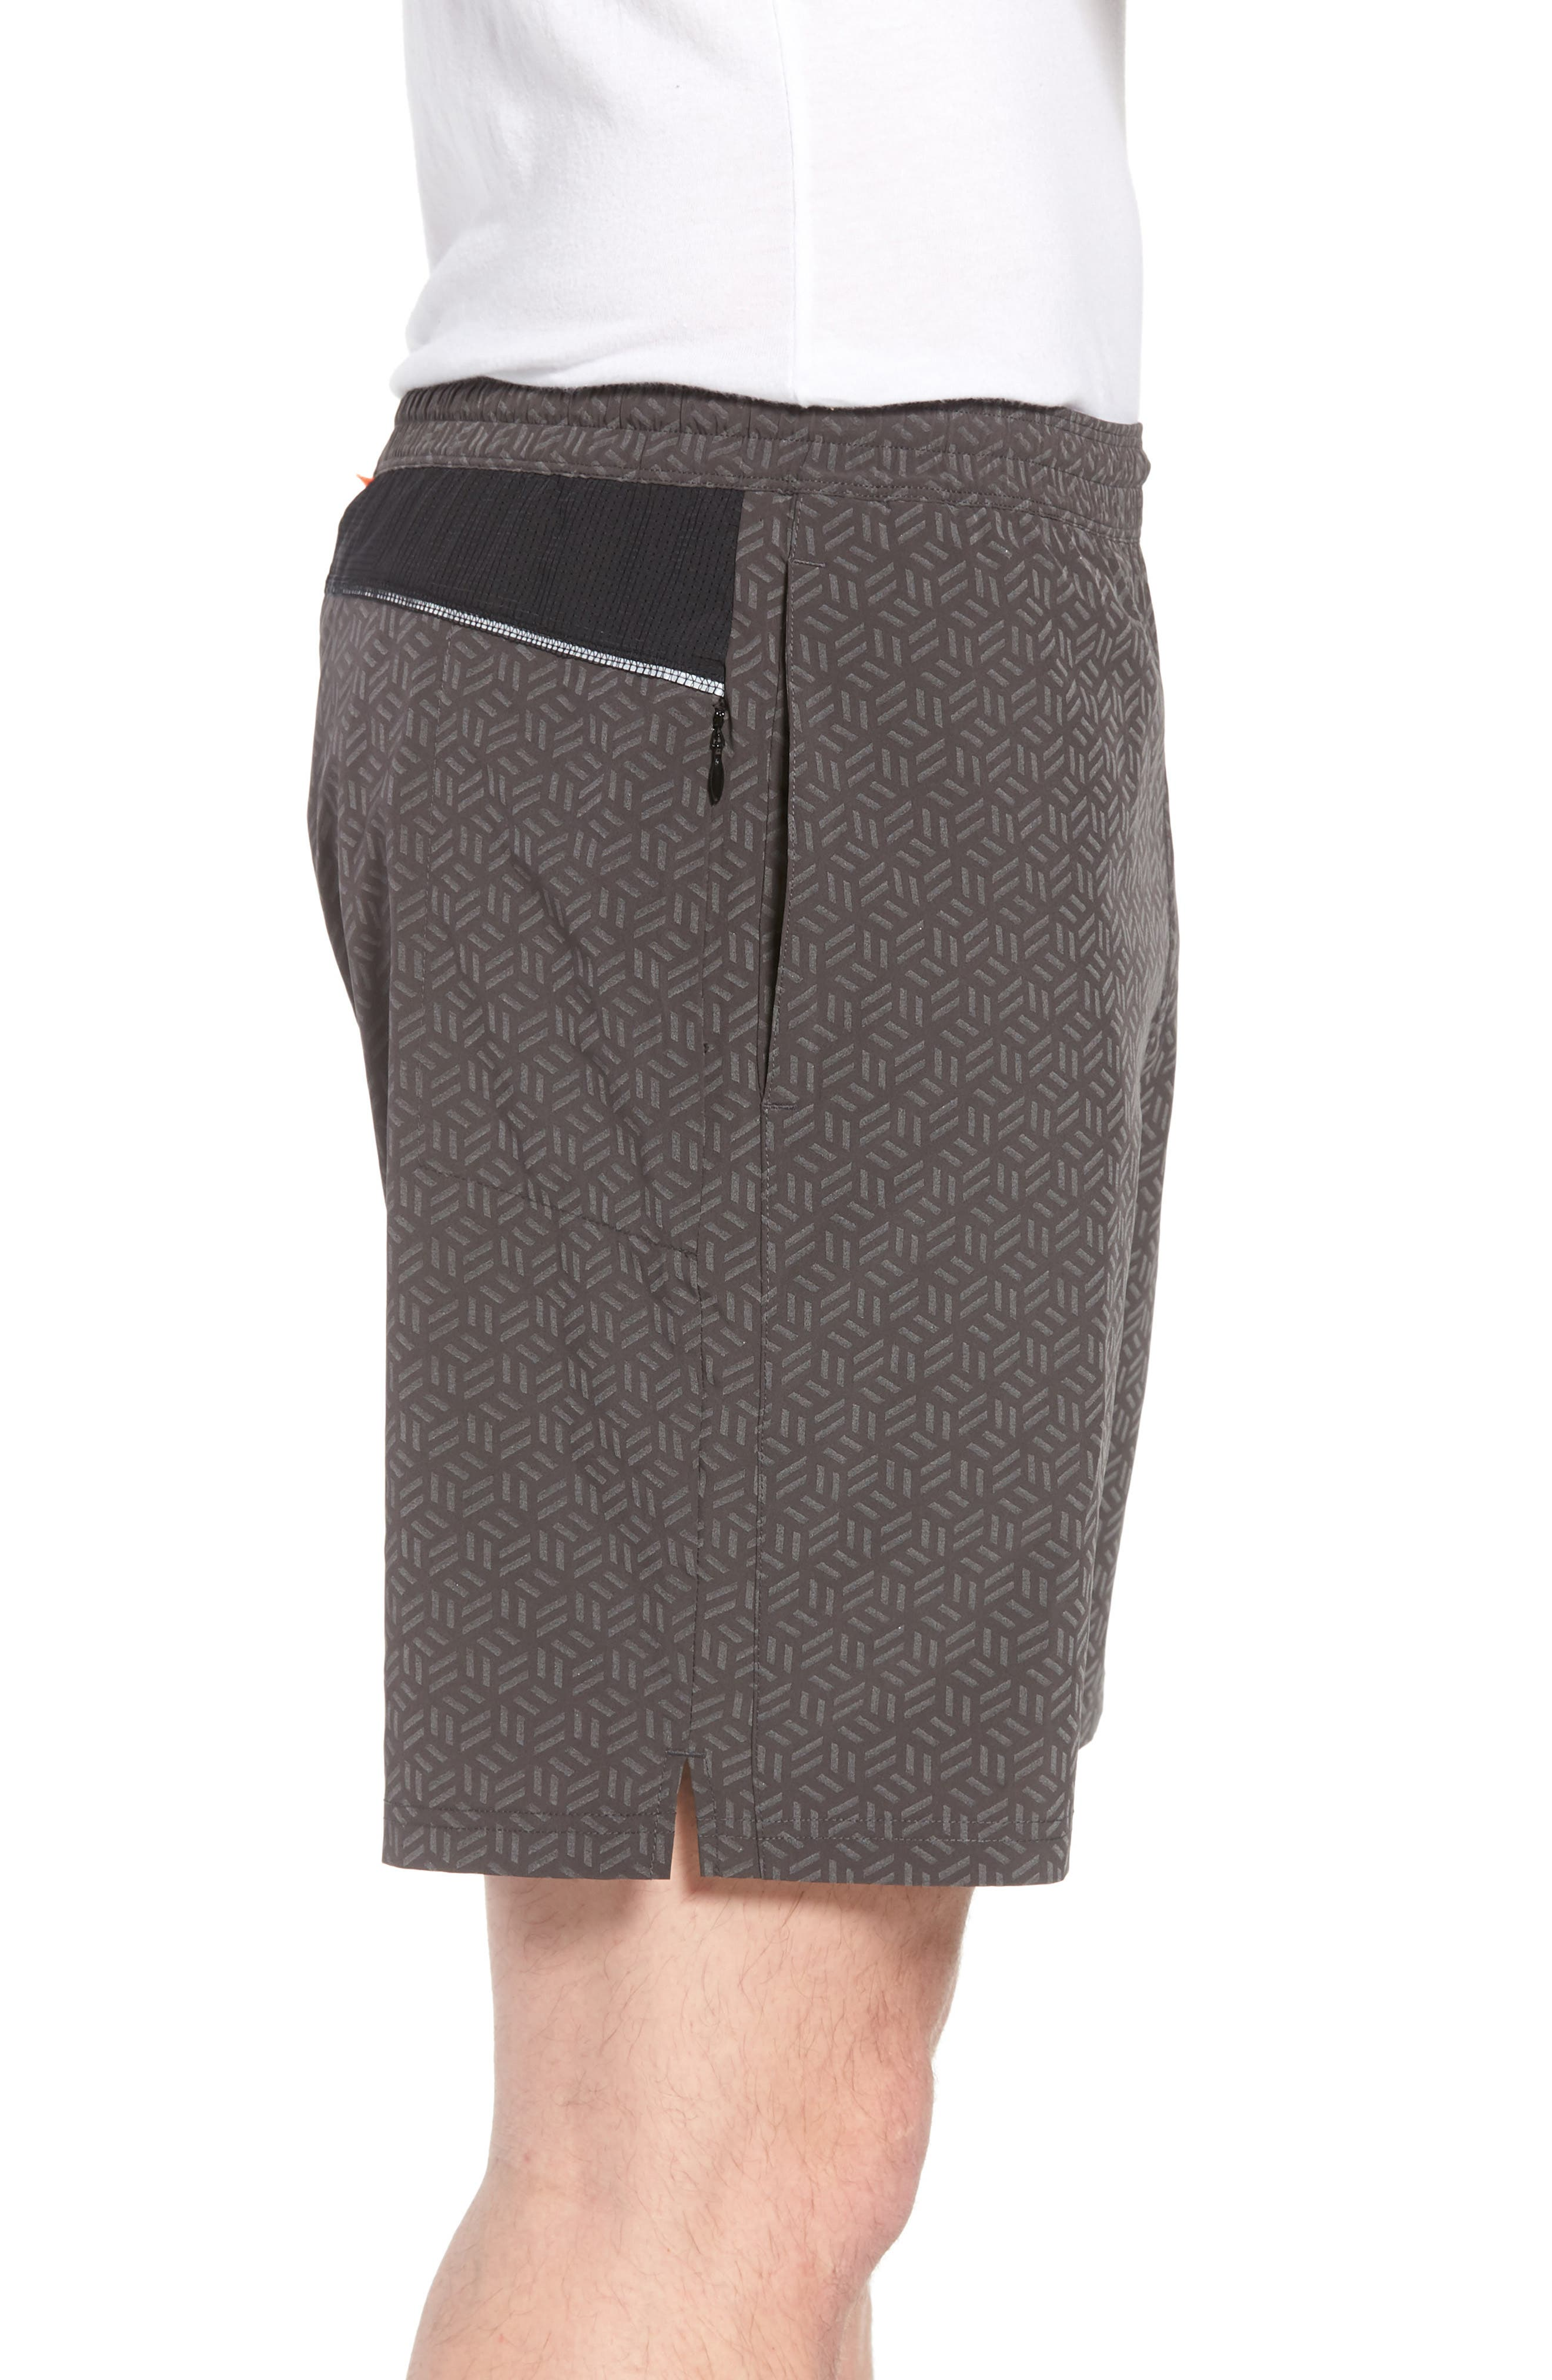 Stretch Shorts,                             Alternate thumbnail 4, color,                             Reflective Cube Geo